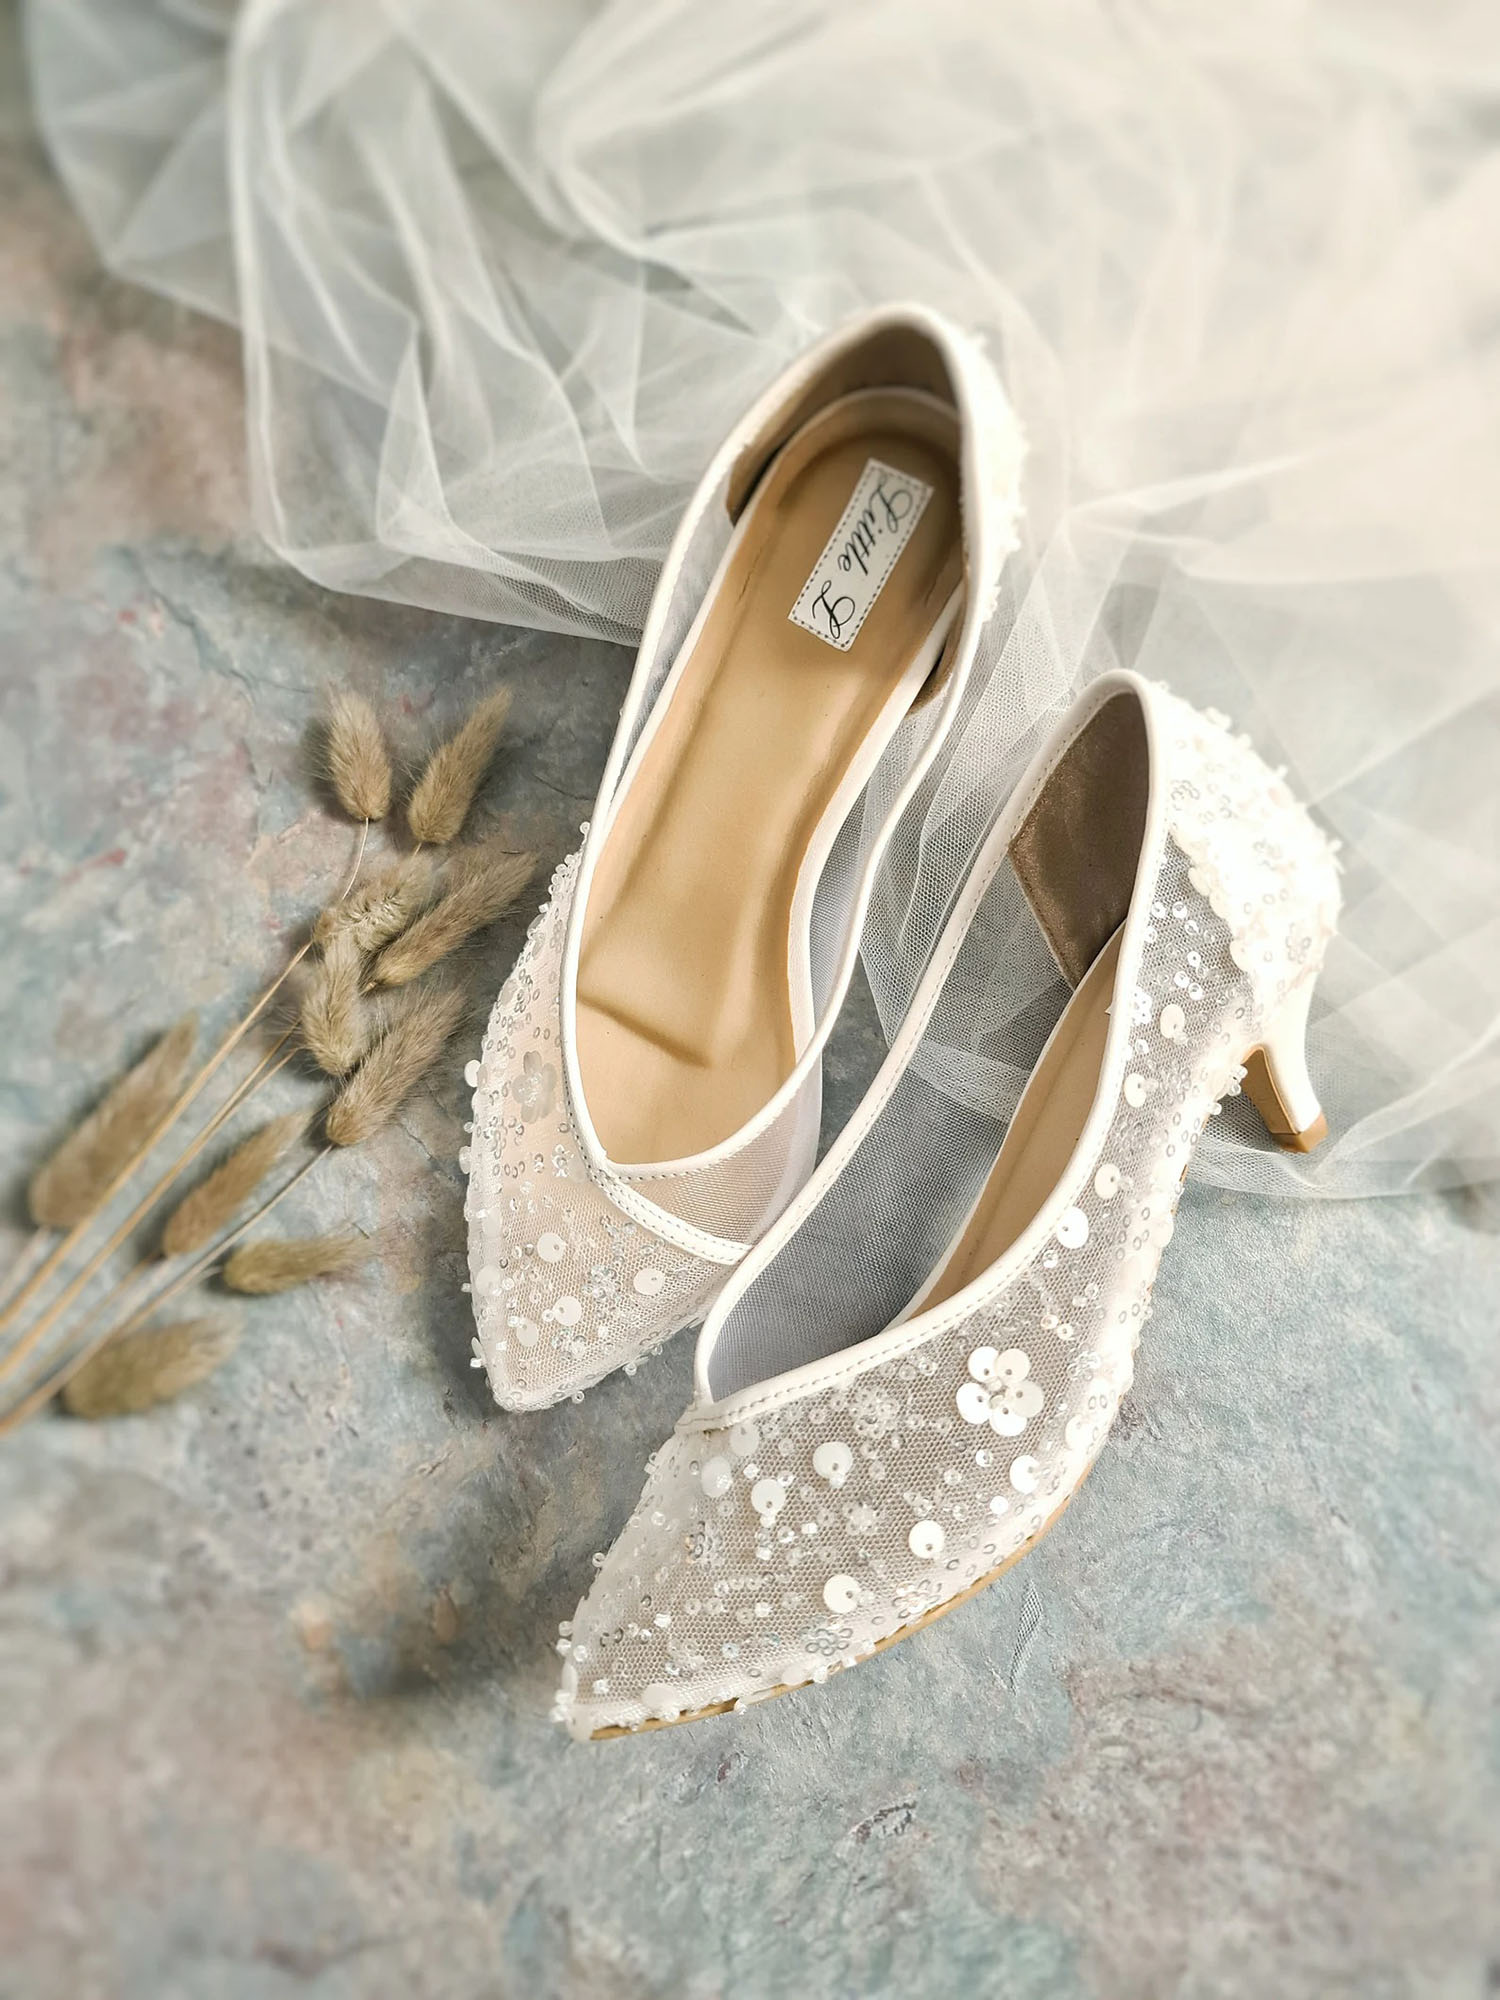 sequin embroidered Little L kitten heels Etsy wedding shoes